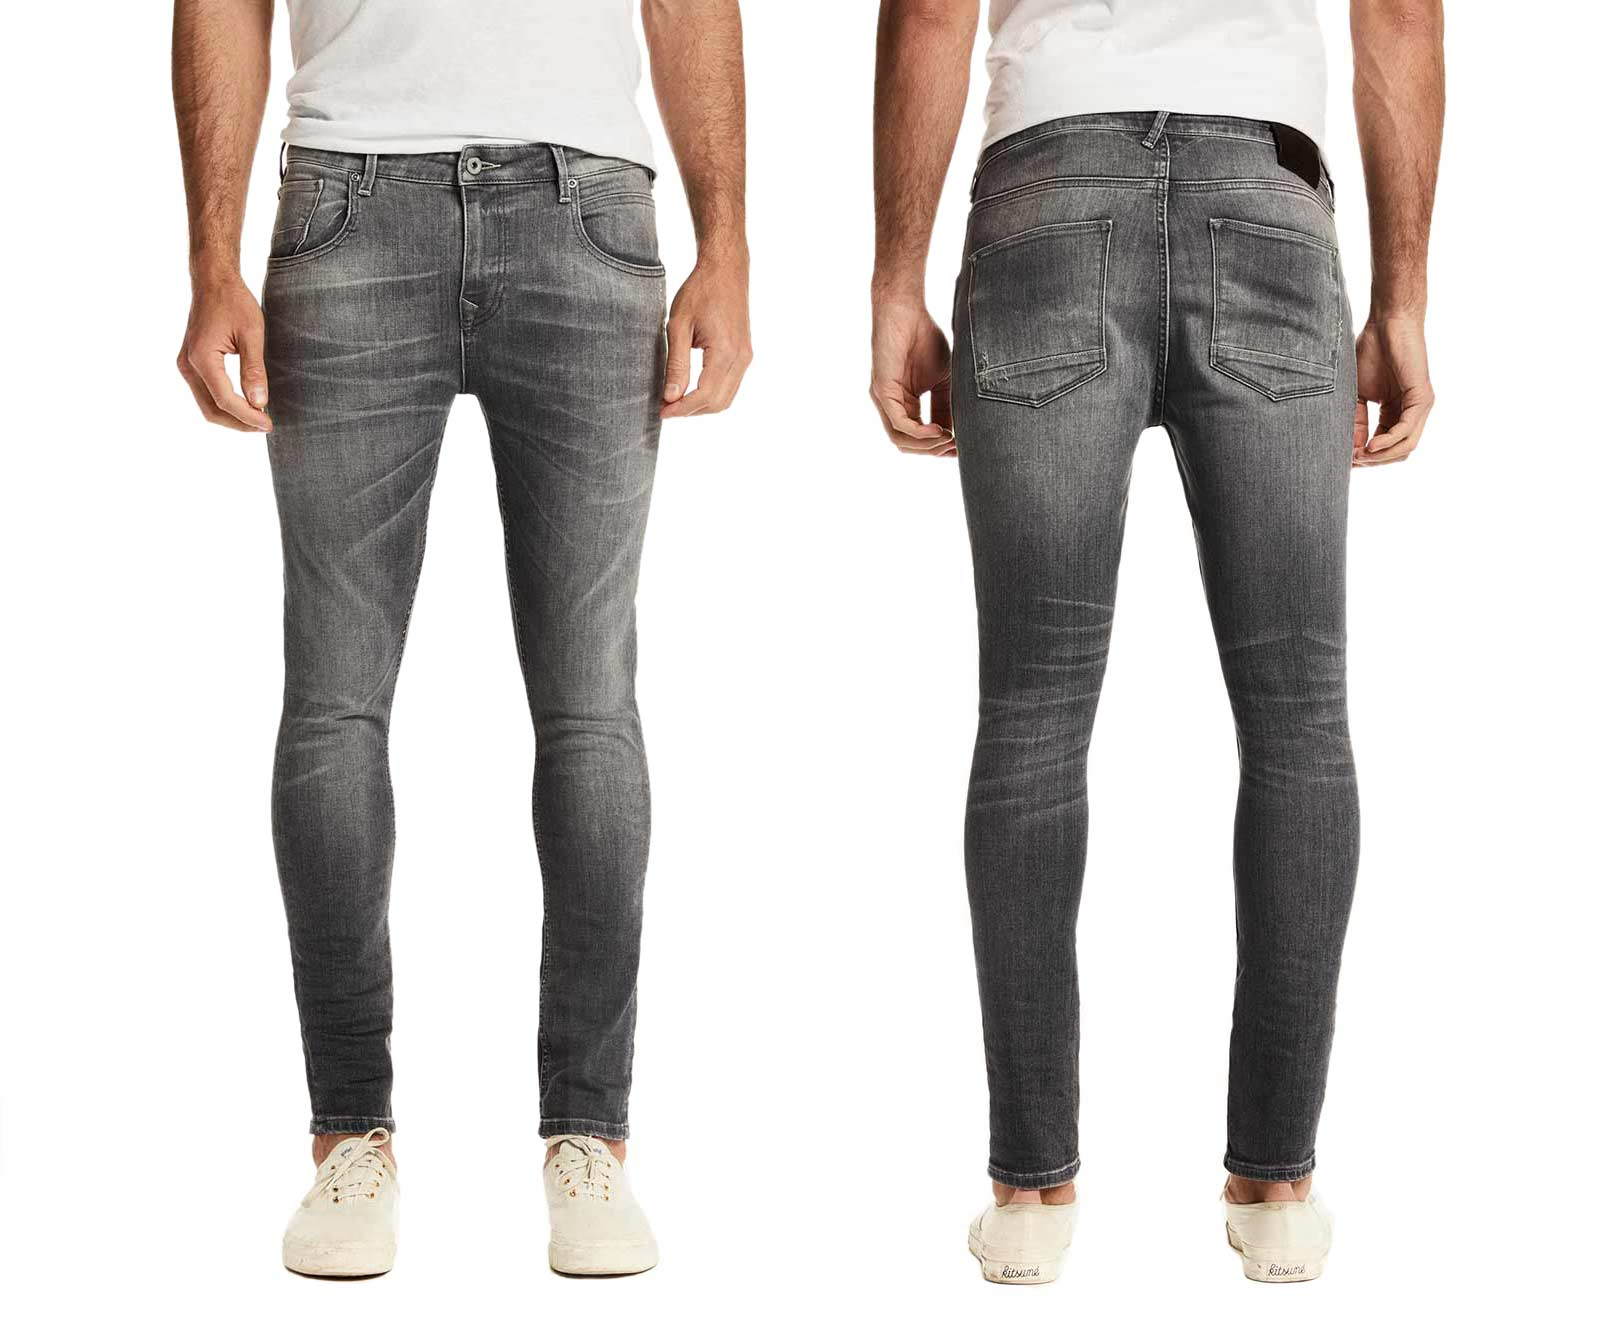 https://www.scotch-soda.com/global/en/men/jeans/super-skinny-fit/super-skinny---dart